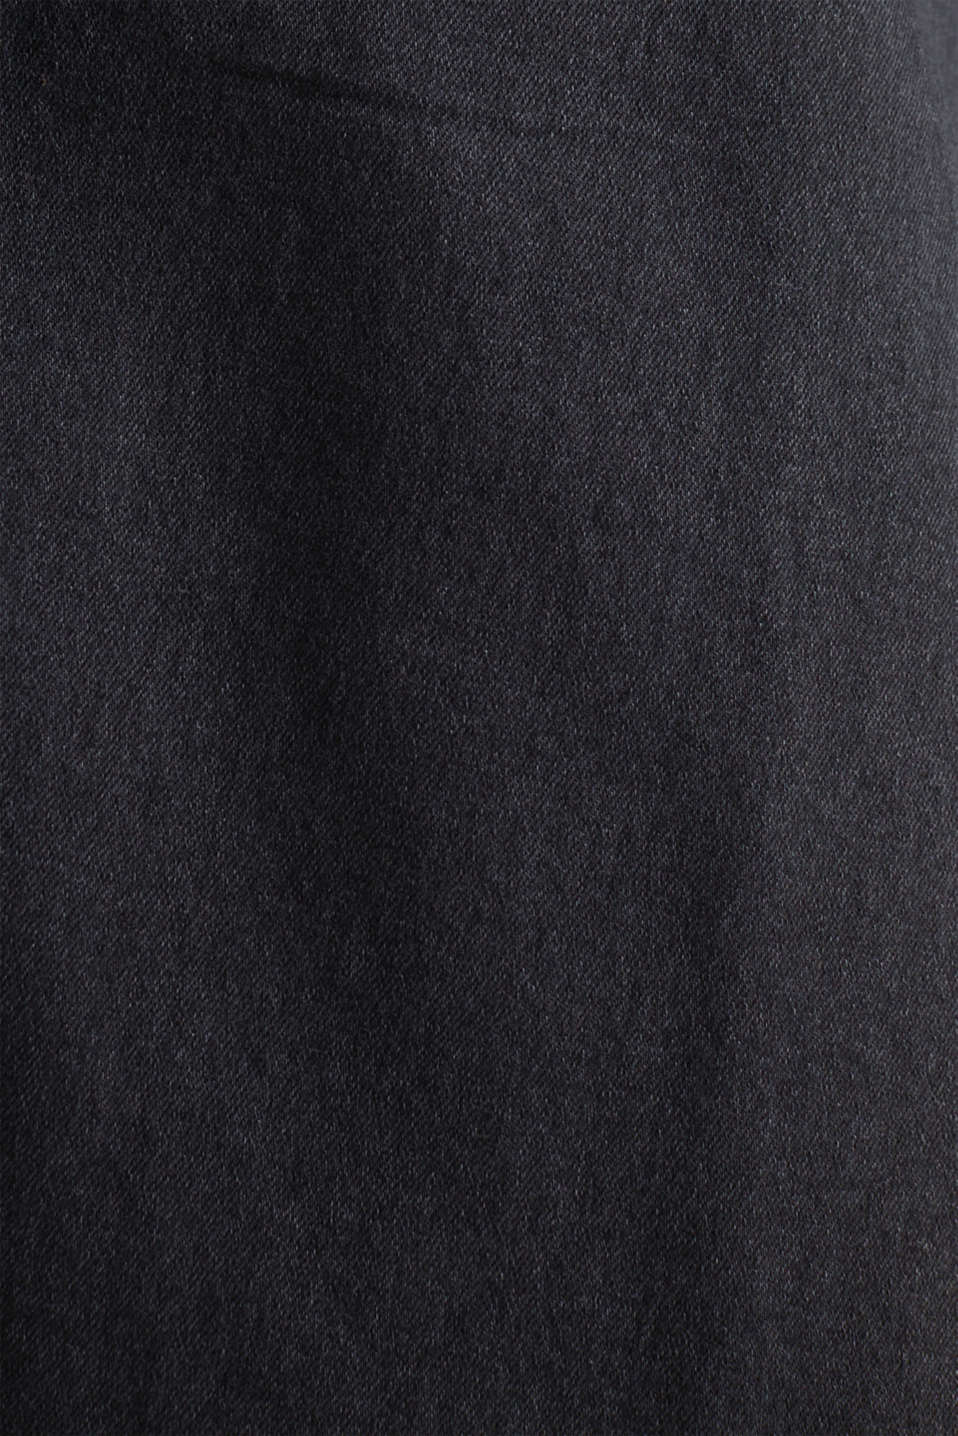 Stretch denim shirt blouse dress, BLACK DARK WASH, detail image number 4